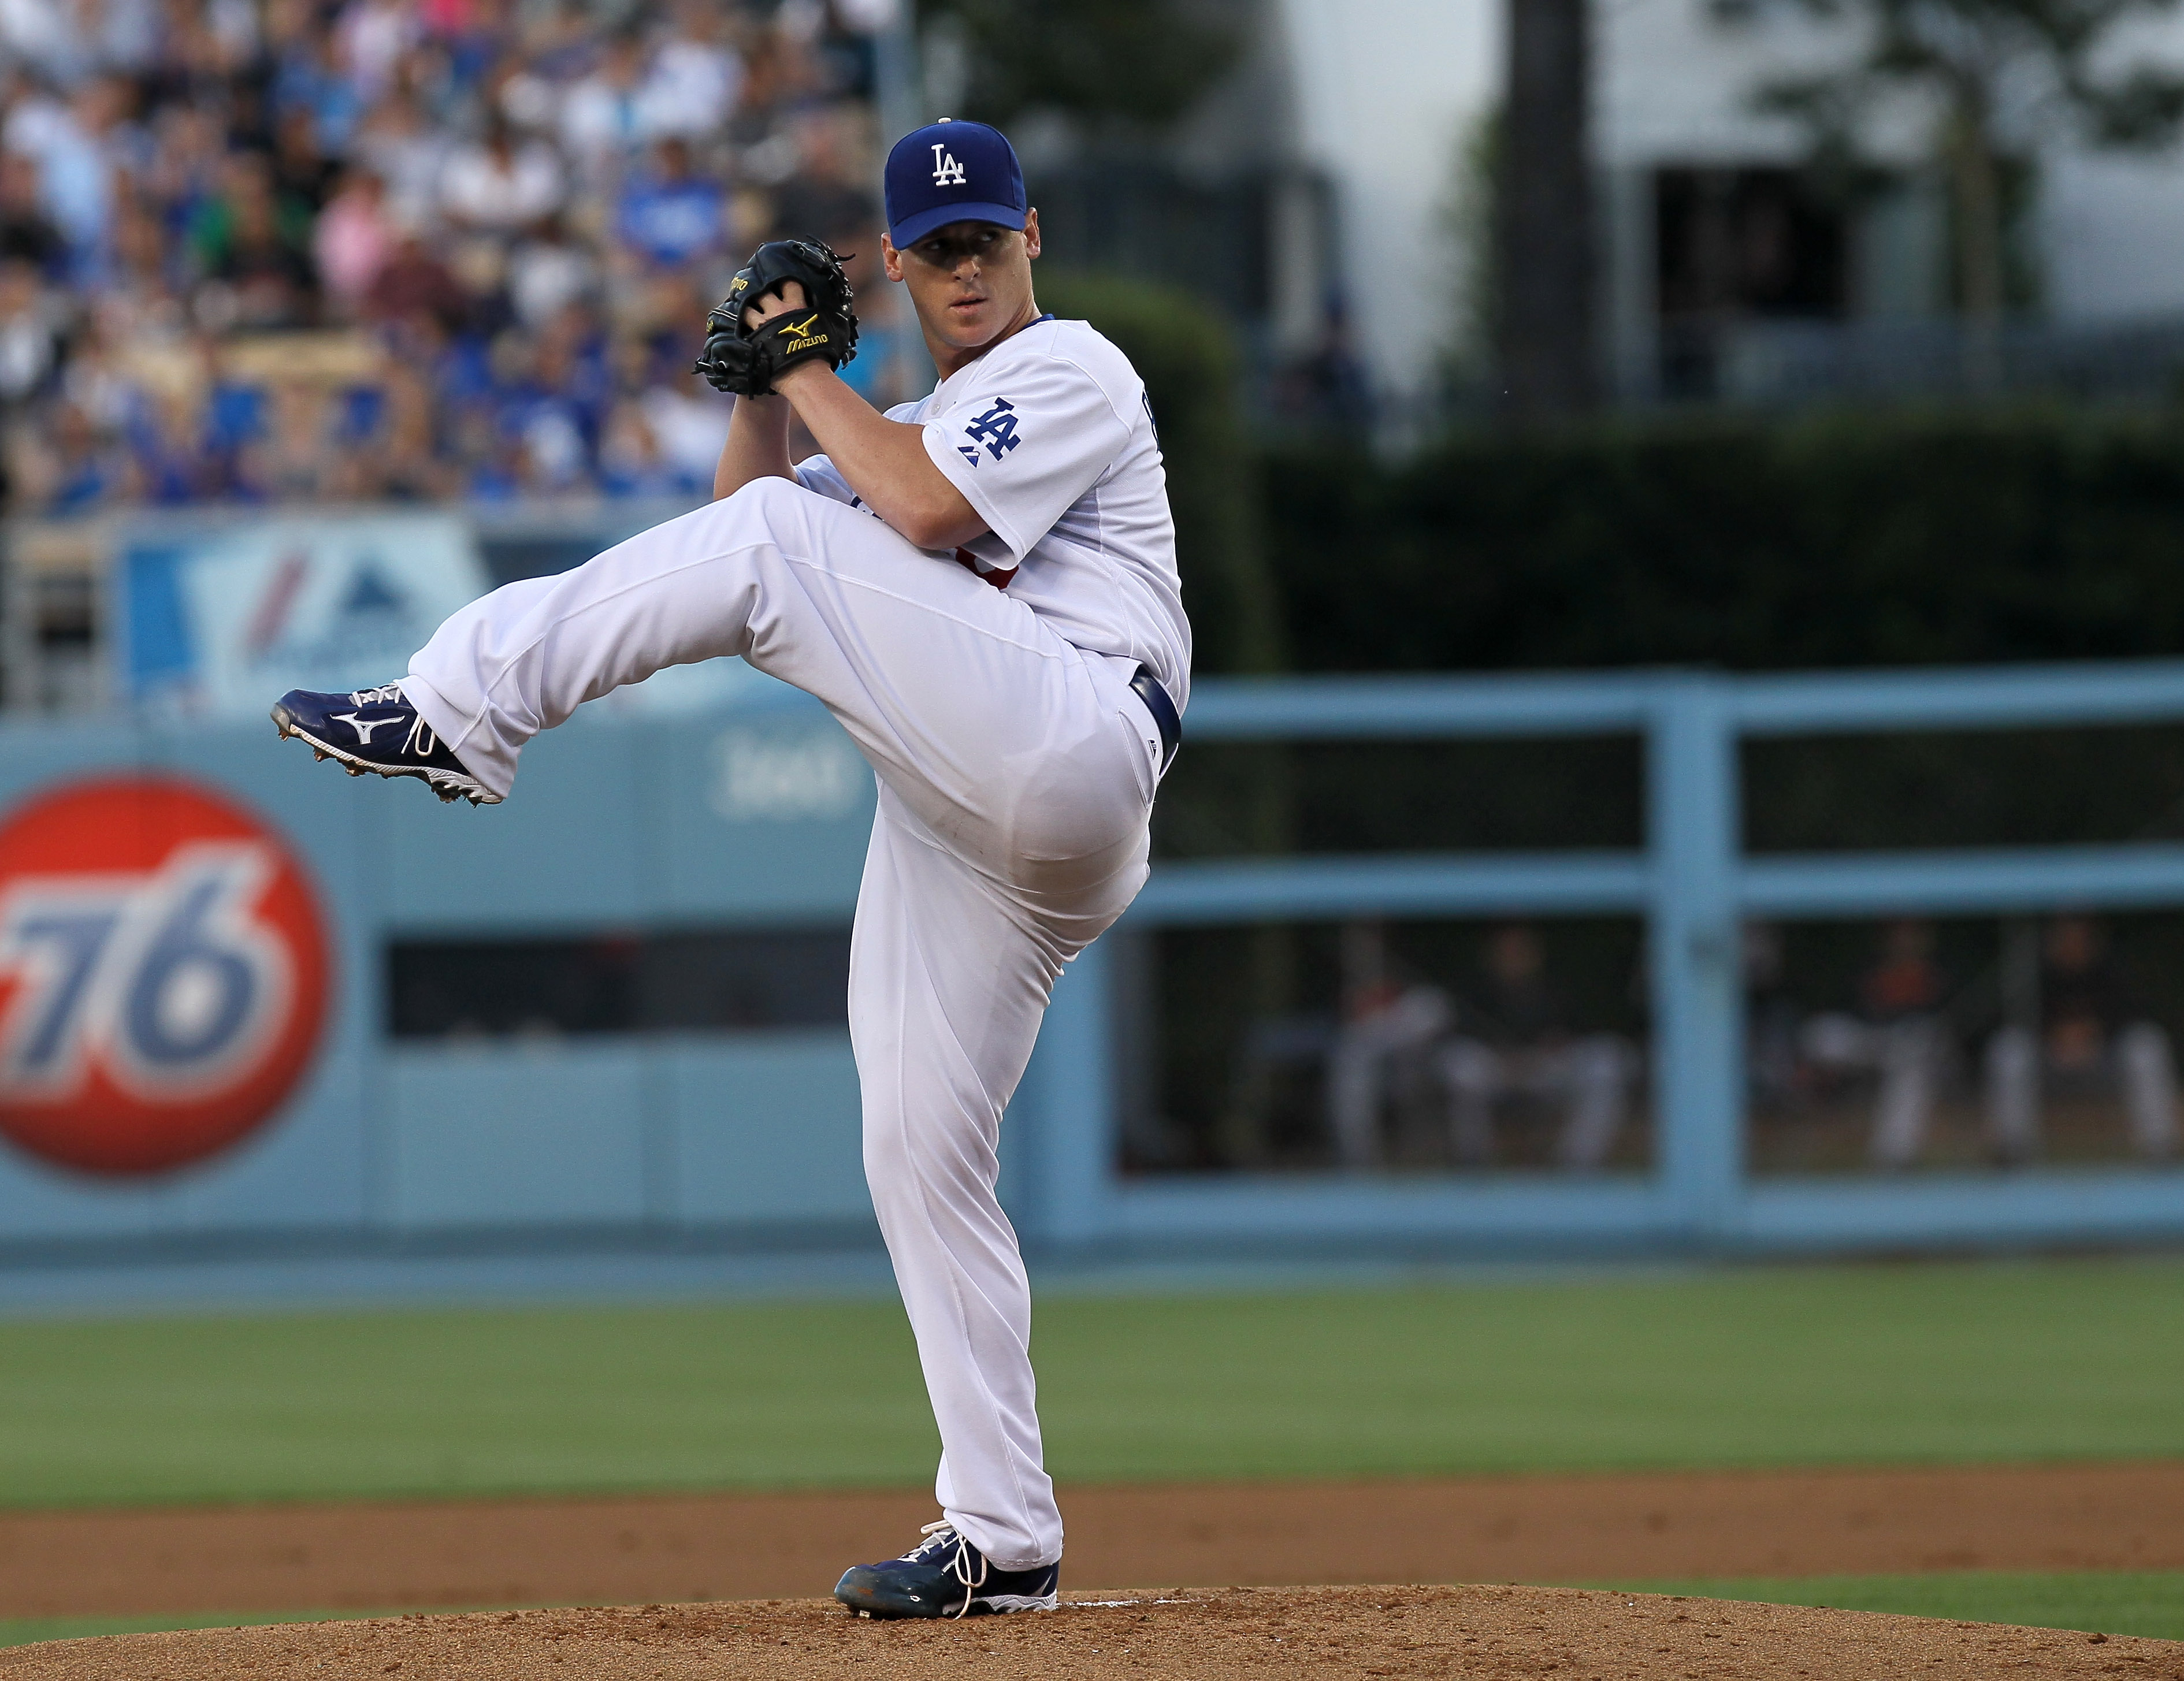 LOS ANGELES, CA - JULY 21:  Chad Billingsley #58 of the Los Angeles Dodgers throws a pitch against the San Francisco Giants on July 21, 2010 at Dodger Stadium in Los Angeles, California.  The Dodgers won 2-0.  (Photo by Stephen Dunn/Getty Images)